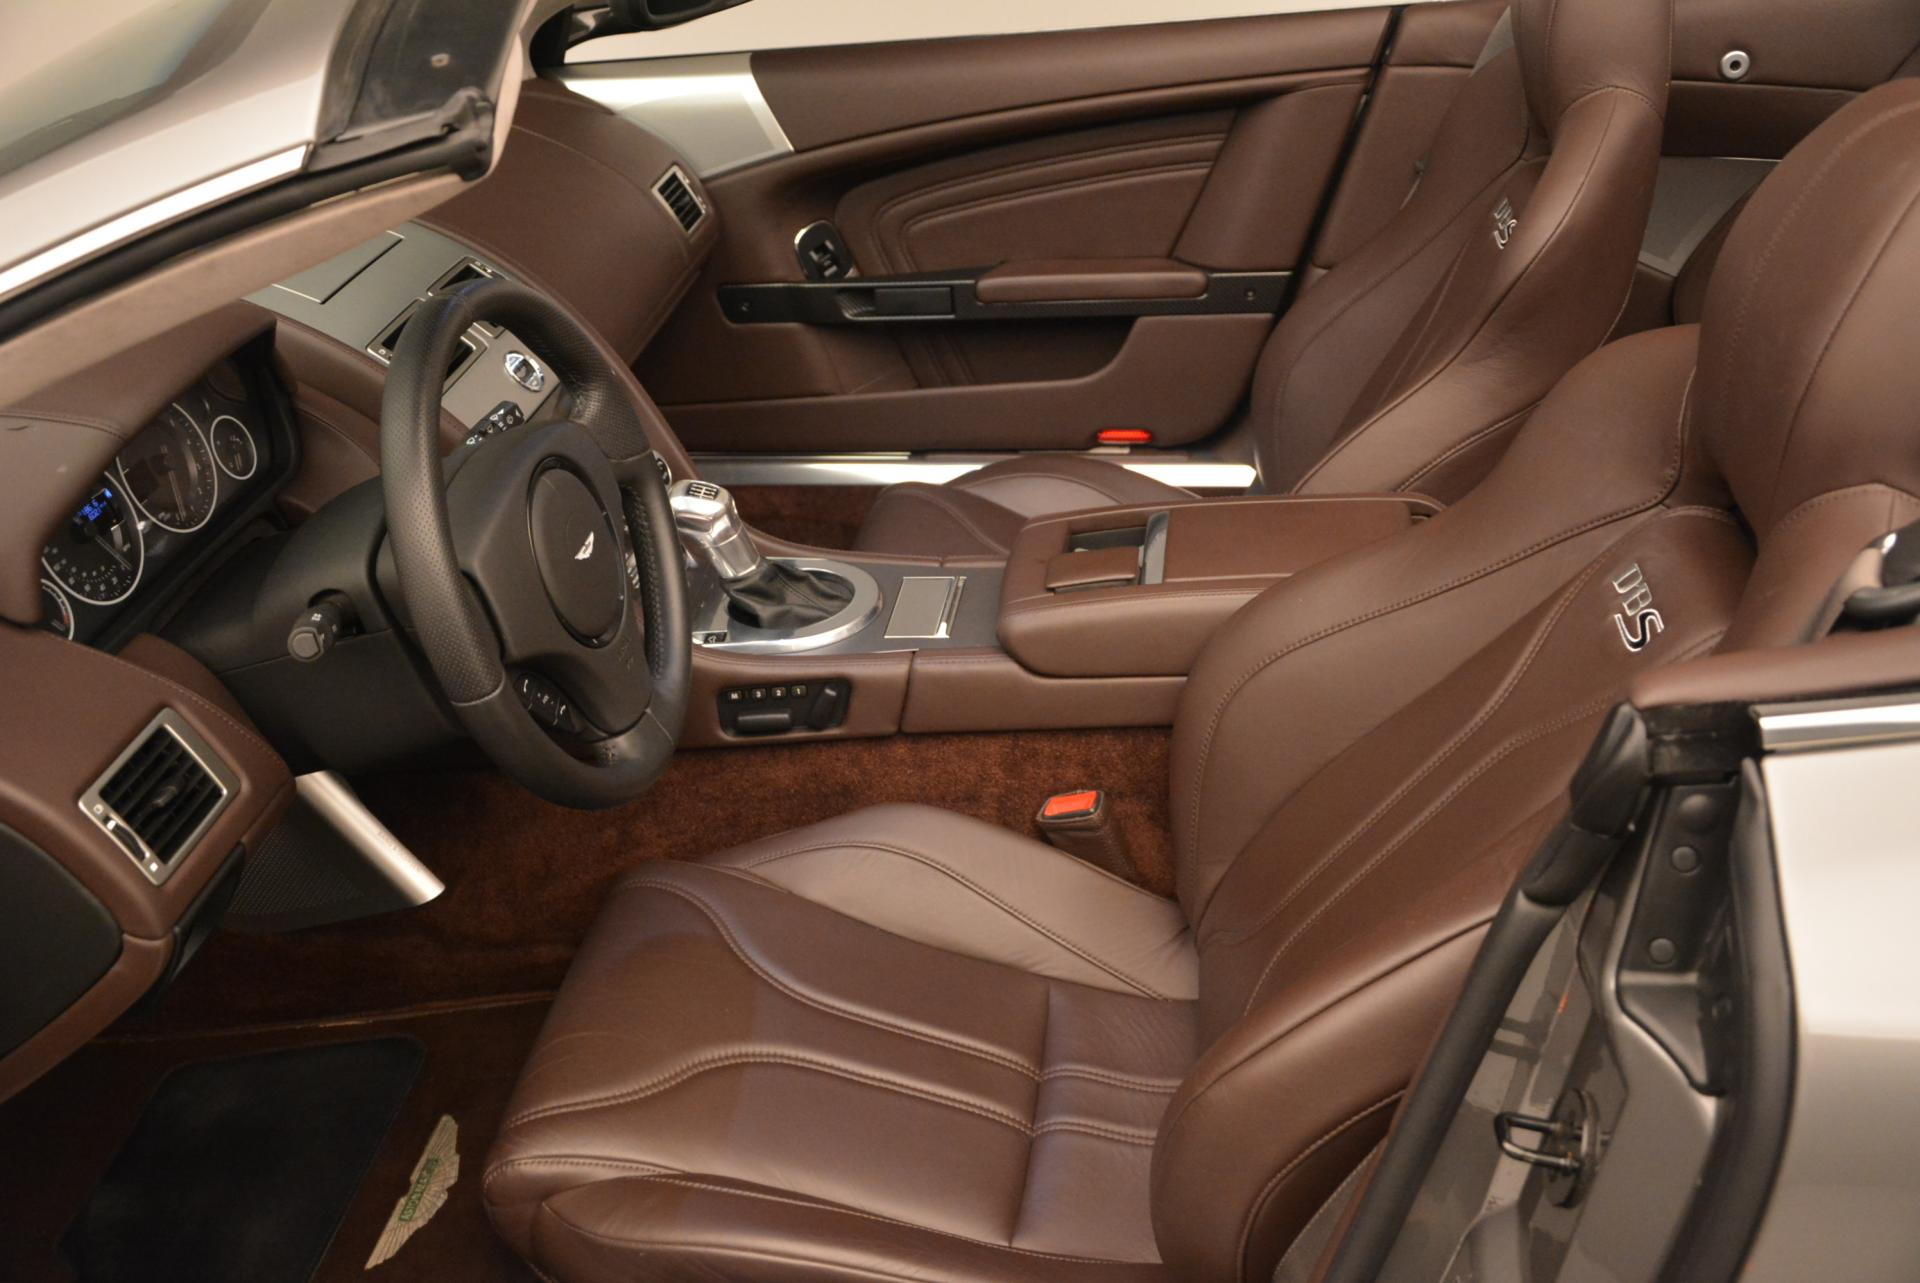 Used 2010 Aston Martin DBS Volante For Sale In Westport, CT 87_p26